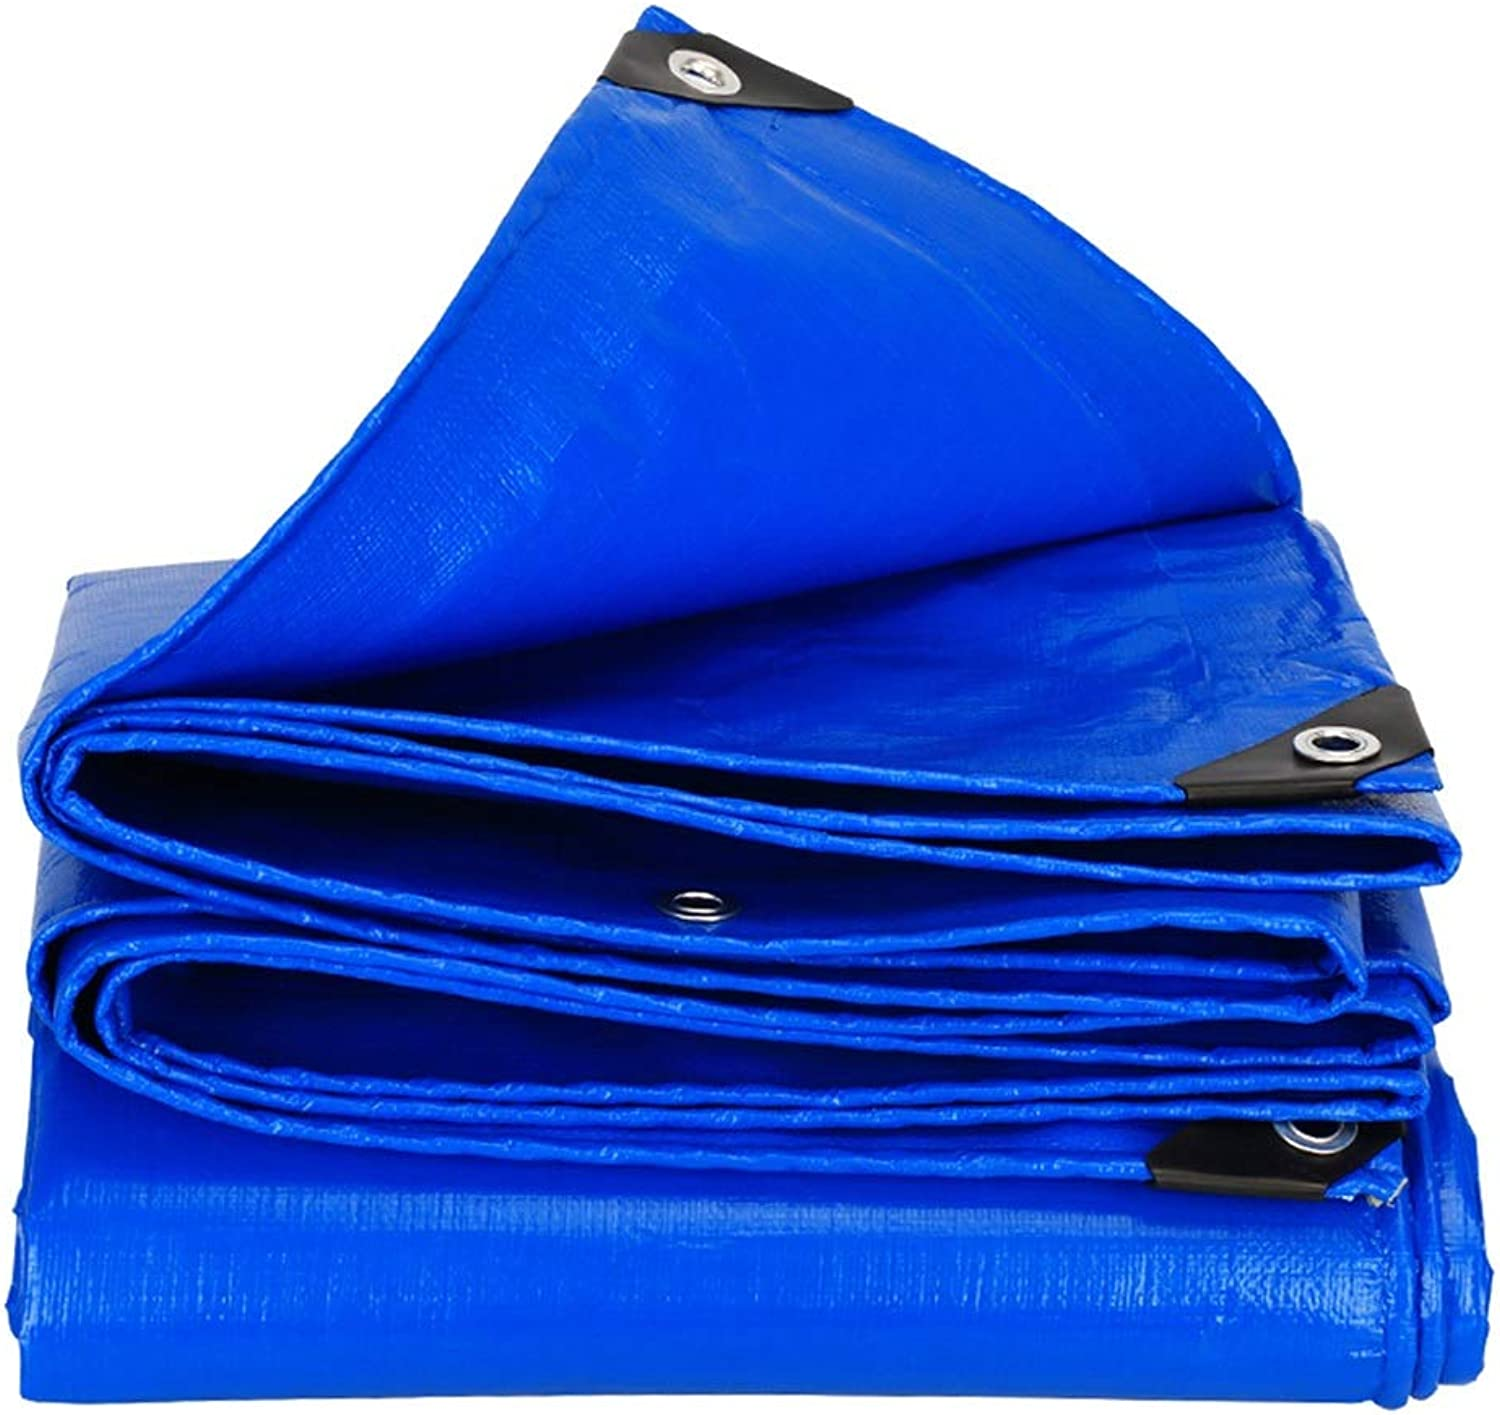 Tarpaulin Tarpaulin Awning Outdoor Thickening Rain Cloth Goods Car Shelter Tarpaulin Plastic Oil Sail Awning Cloth Tear Resistant Camping Shelters (color   blueee, Size   500  500cm)